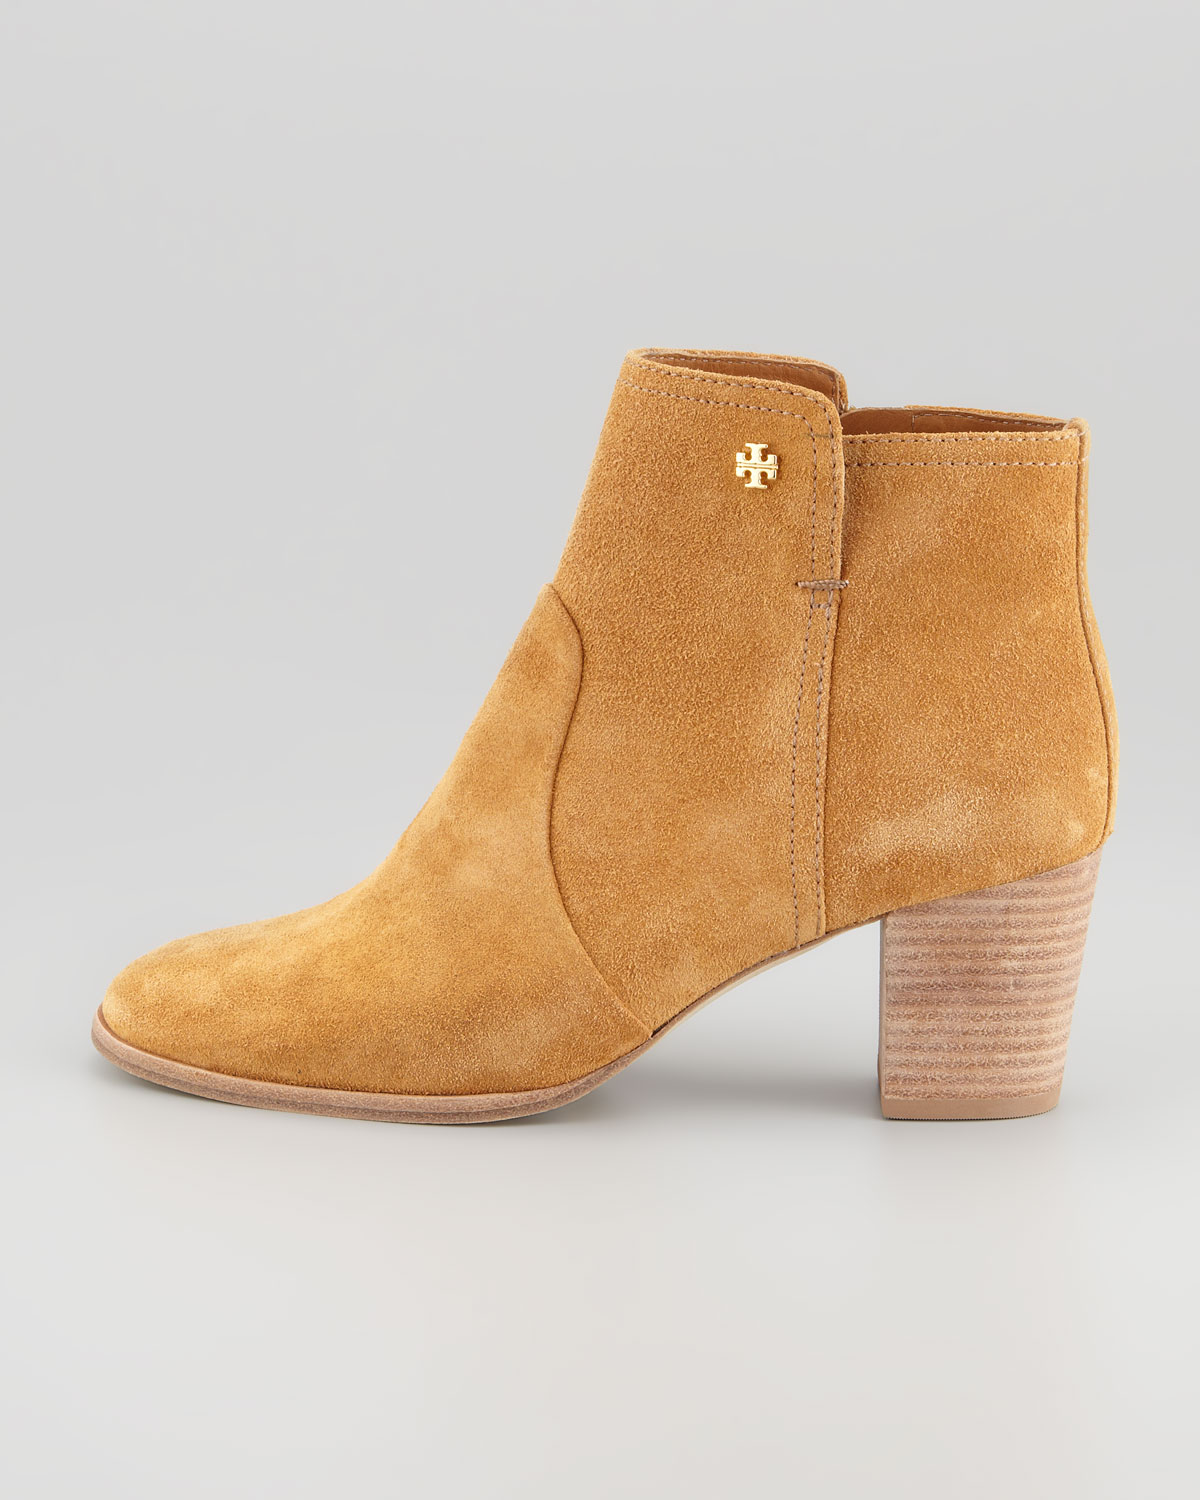 f190927af11 Lyst - Tory Burch Sabe Suede Bootie in Natural